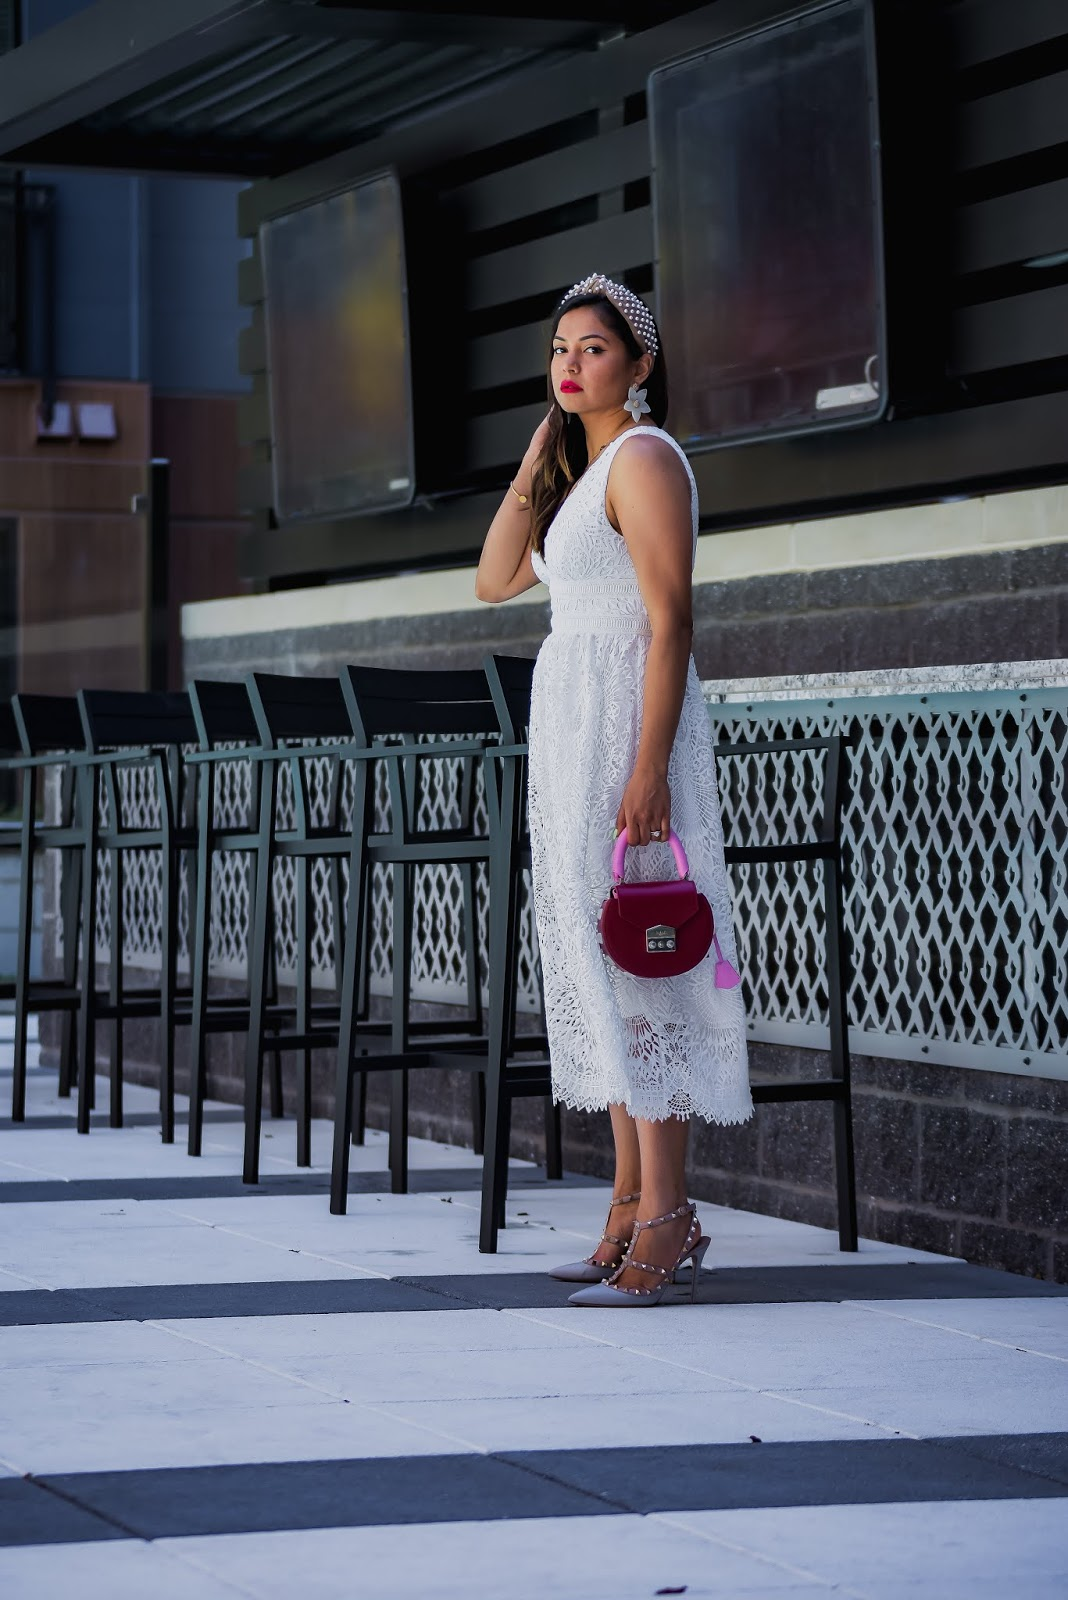 white dress, summer wedding outfit, valentiono rockstud pumps, lele sadoughi paerl headband, red bag, street style, myriad musings